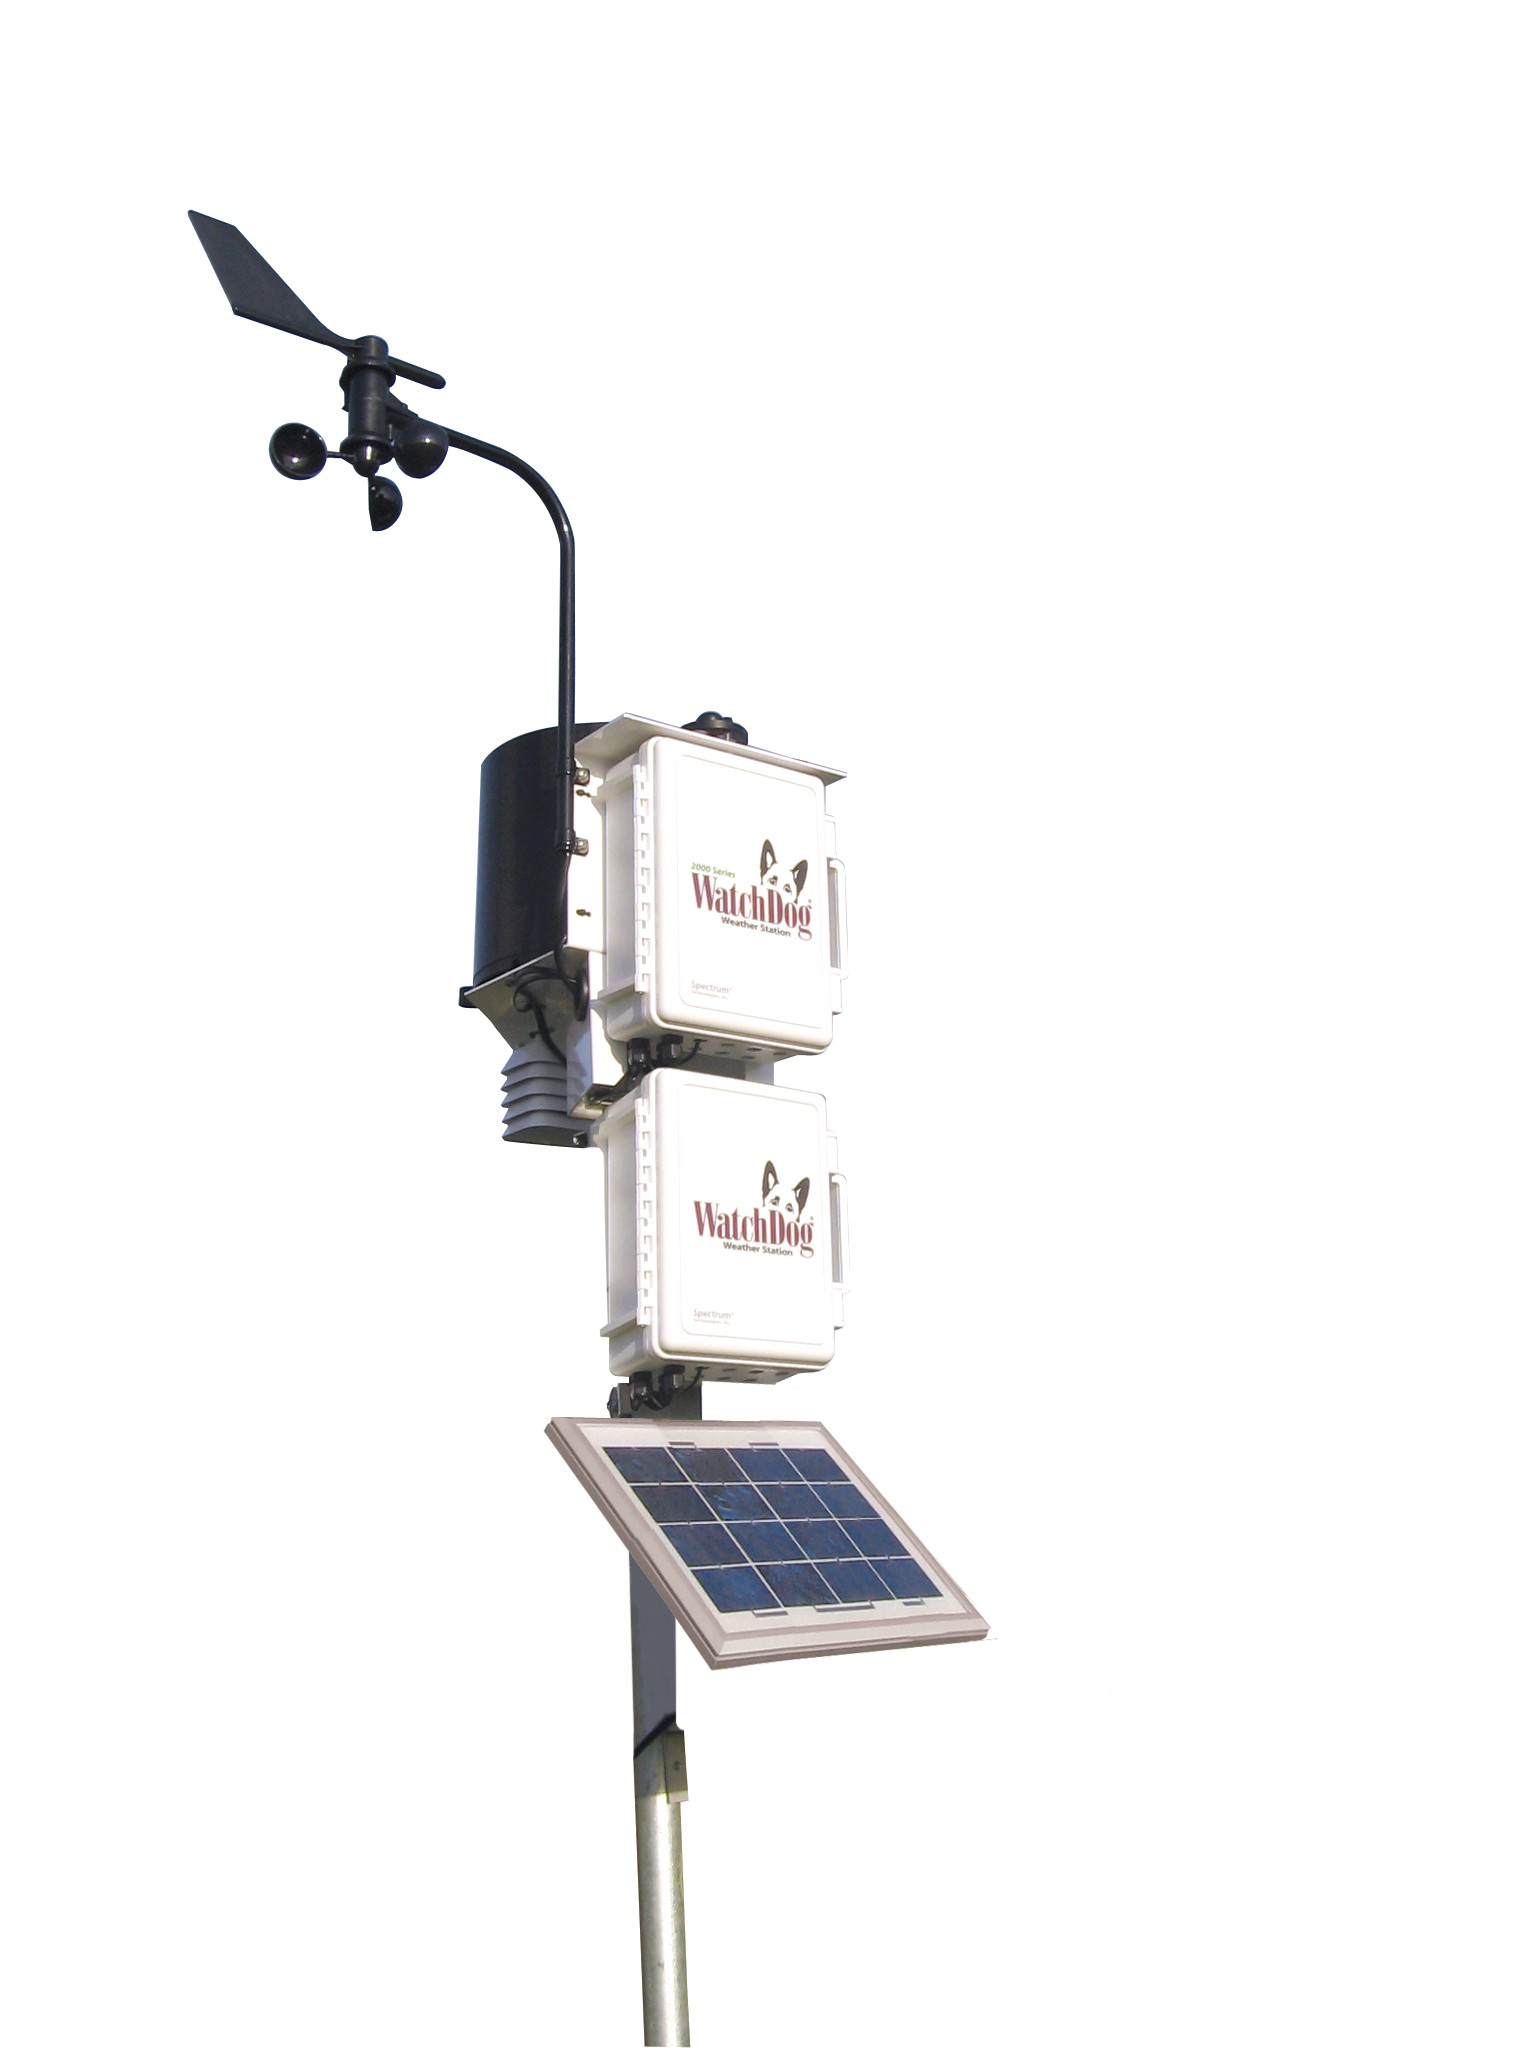 Professional Weather Station with GPRS modem - Model Watchdog 2900ET